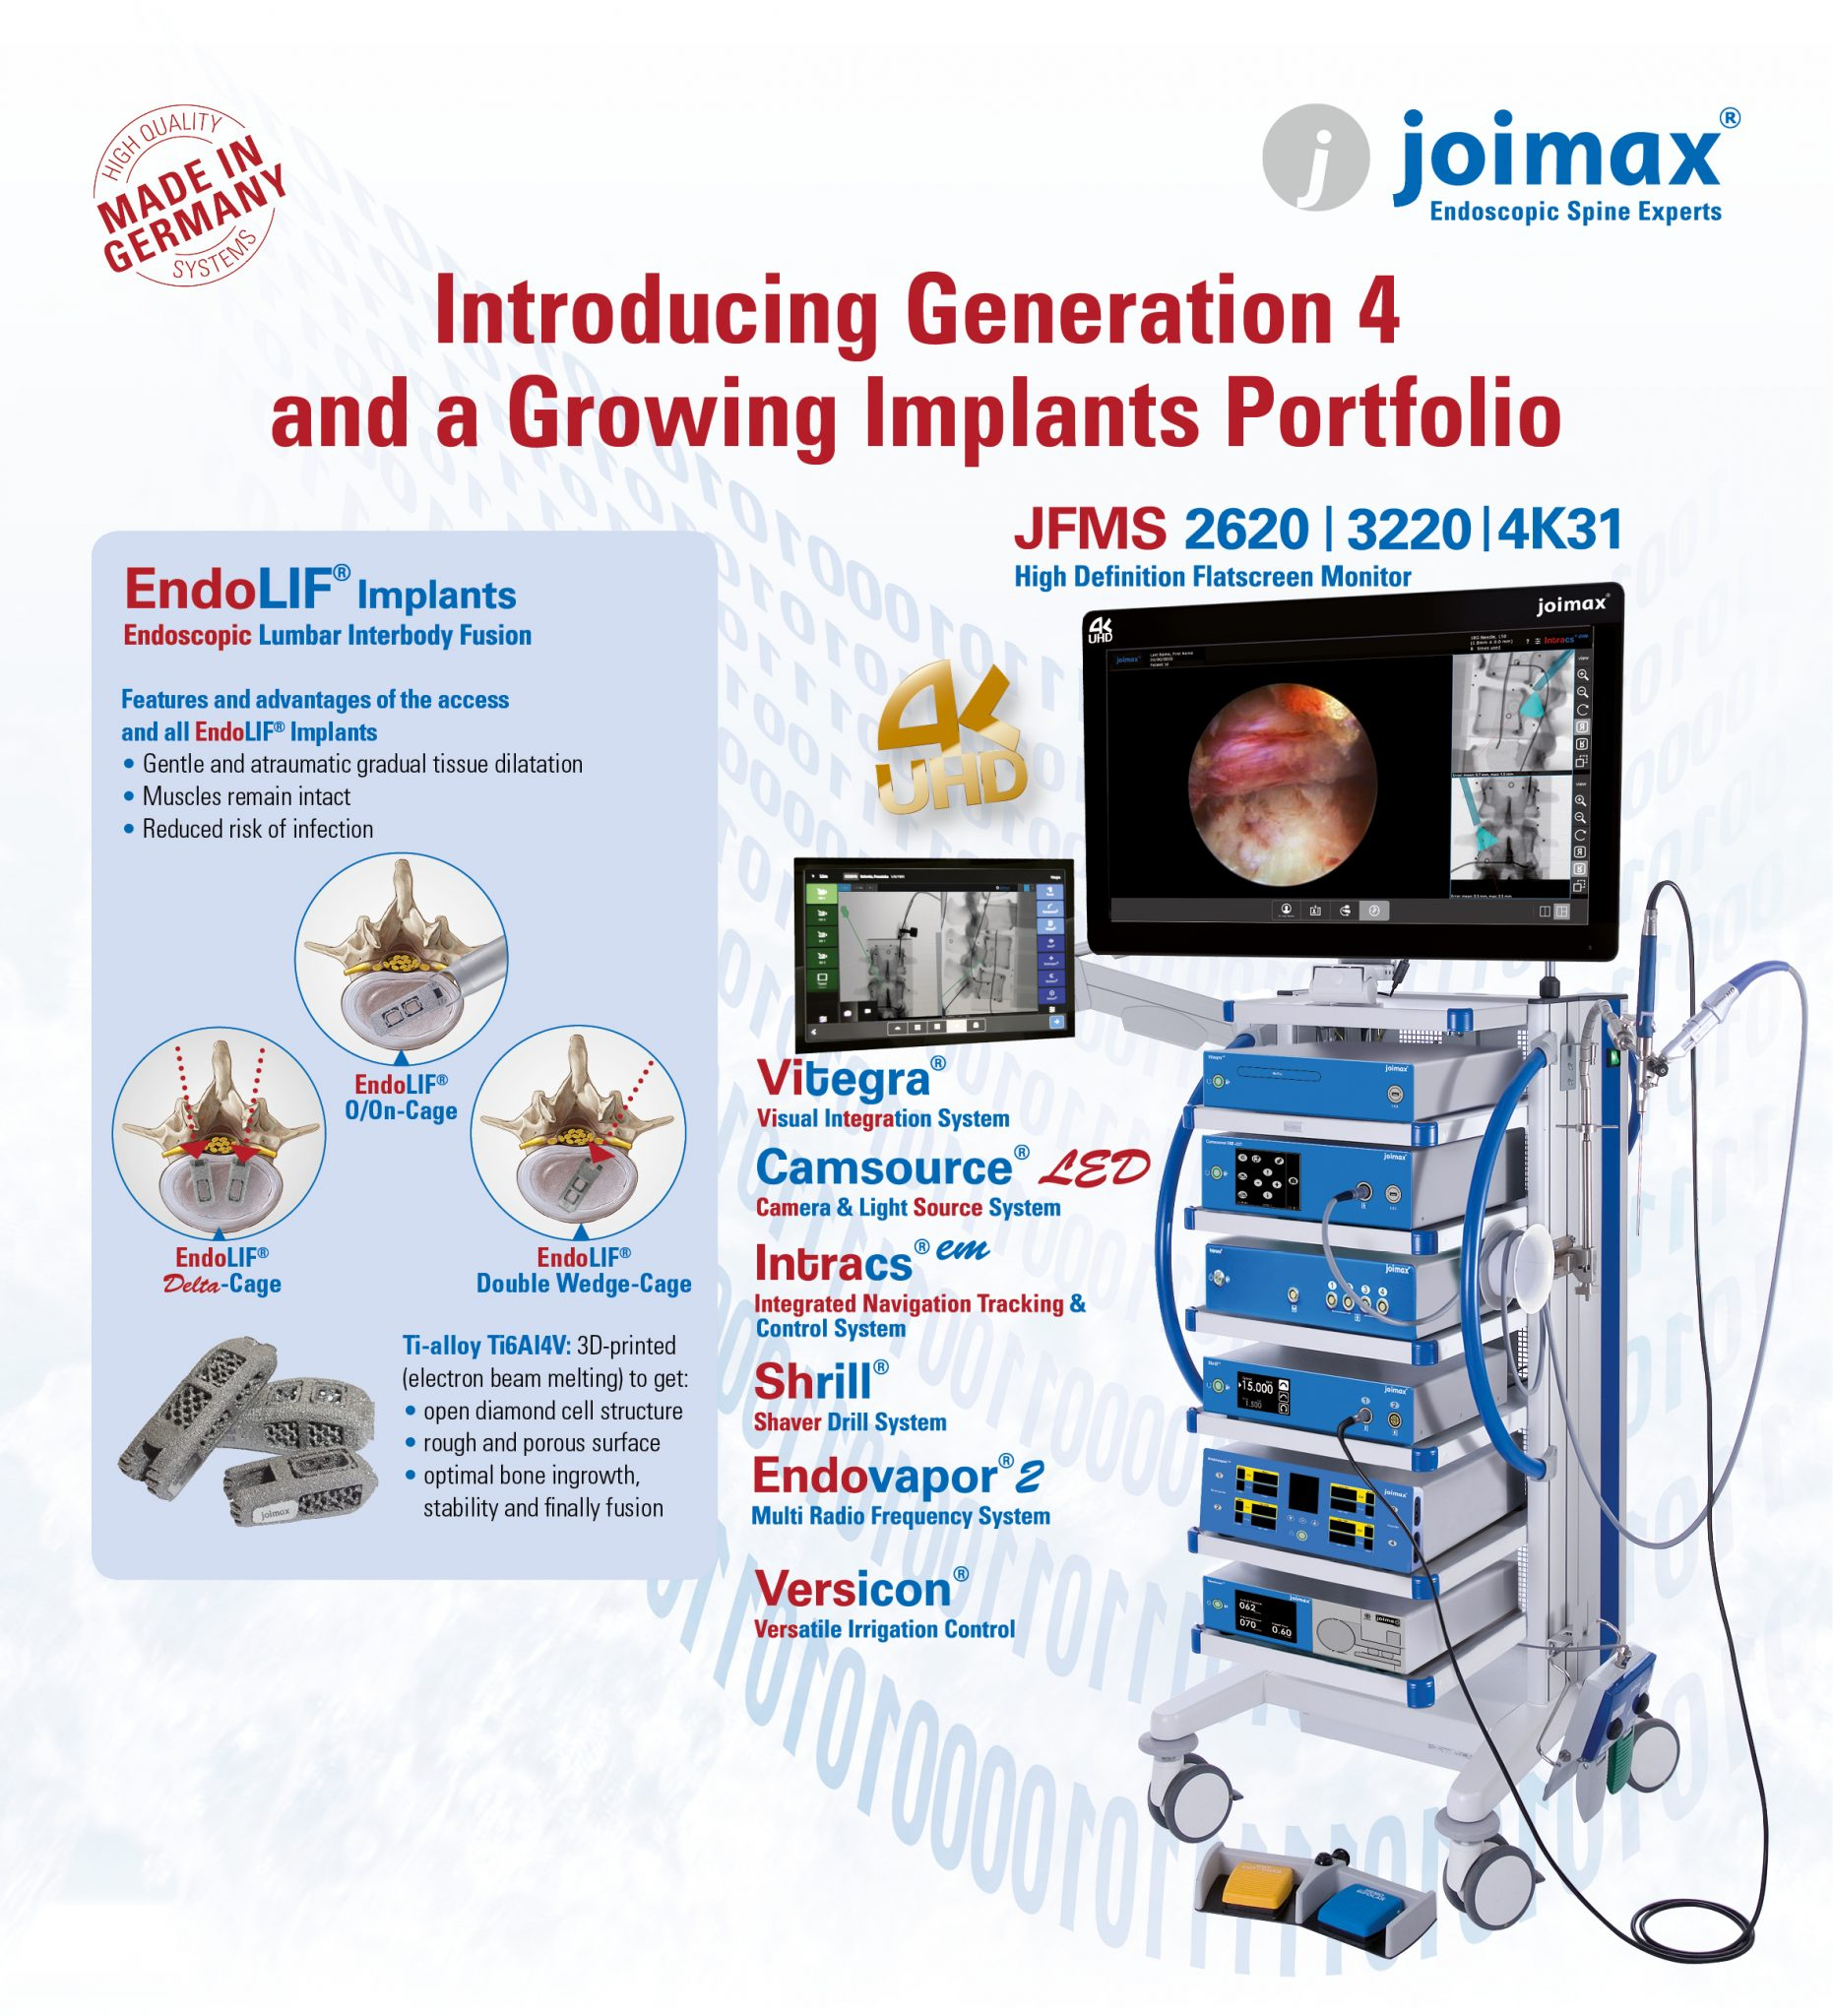 Joimax, Endoscopic spine surgery, Minimally invasive, Transforaminal, Interlaminar, Training and Education, EndoLIF Implants, Navigation, Generation4, next Generation, tower, endoscopic